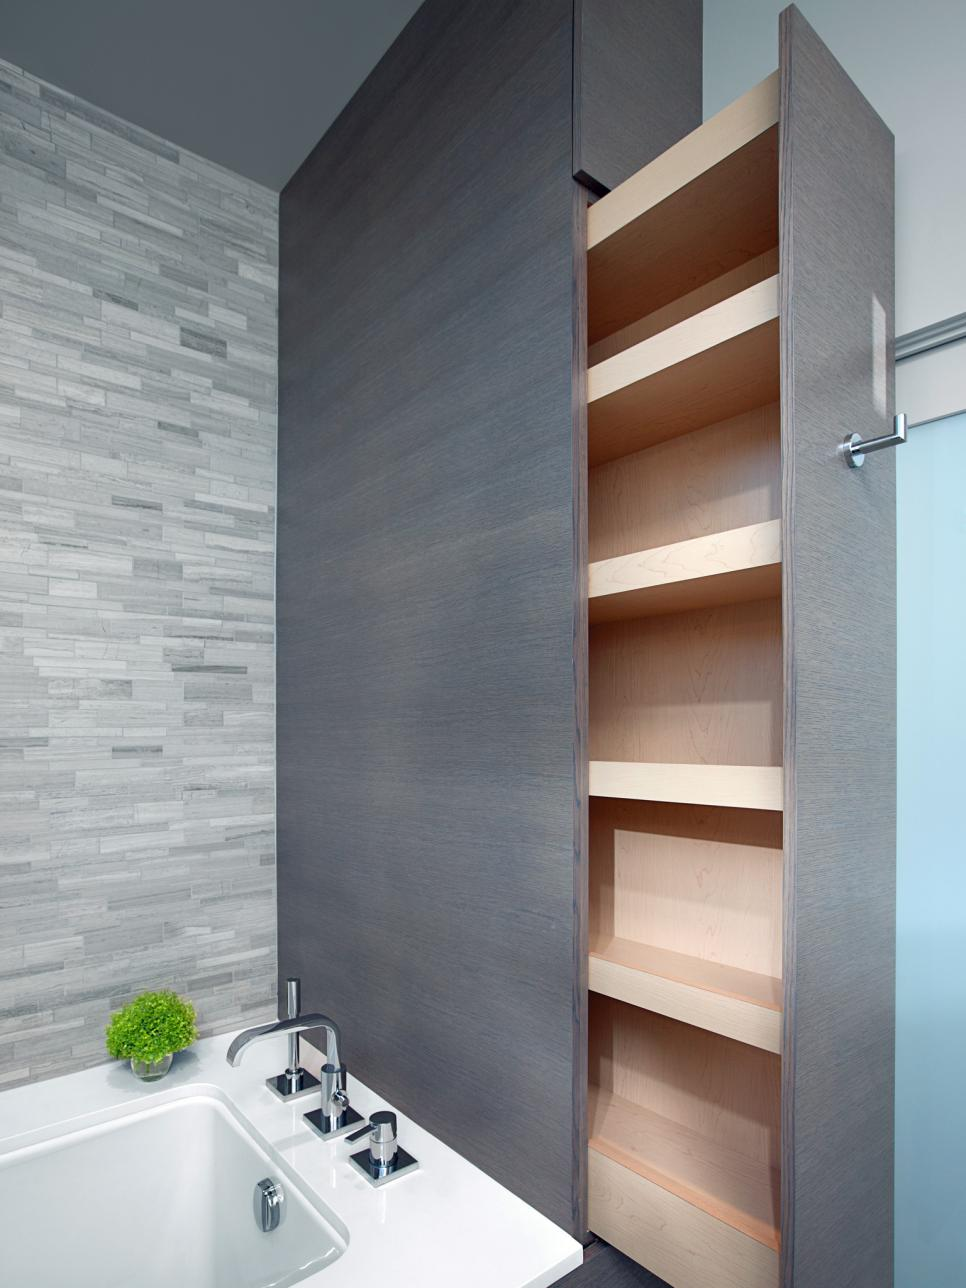 storage bathroom ideas 15 smart bath storage ideas hgtv 5231